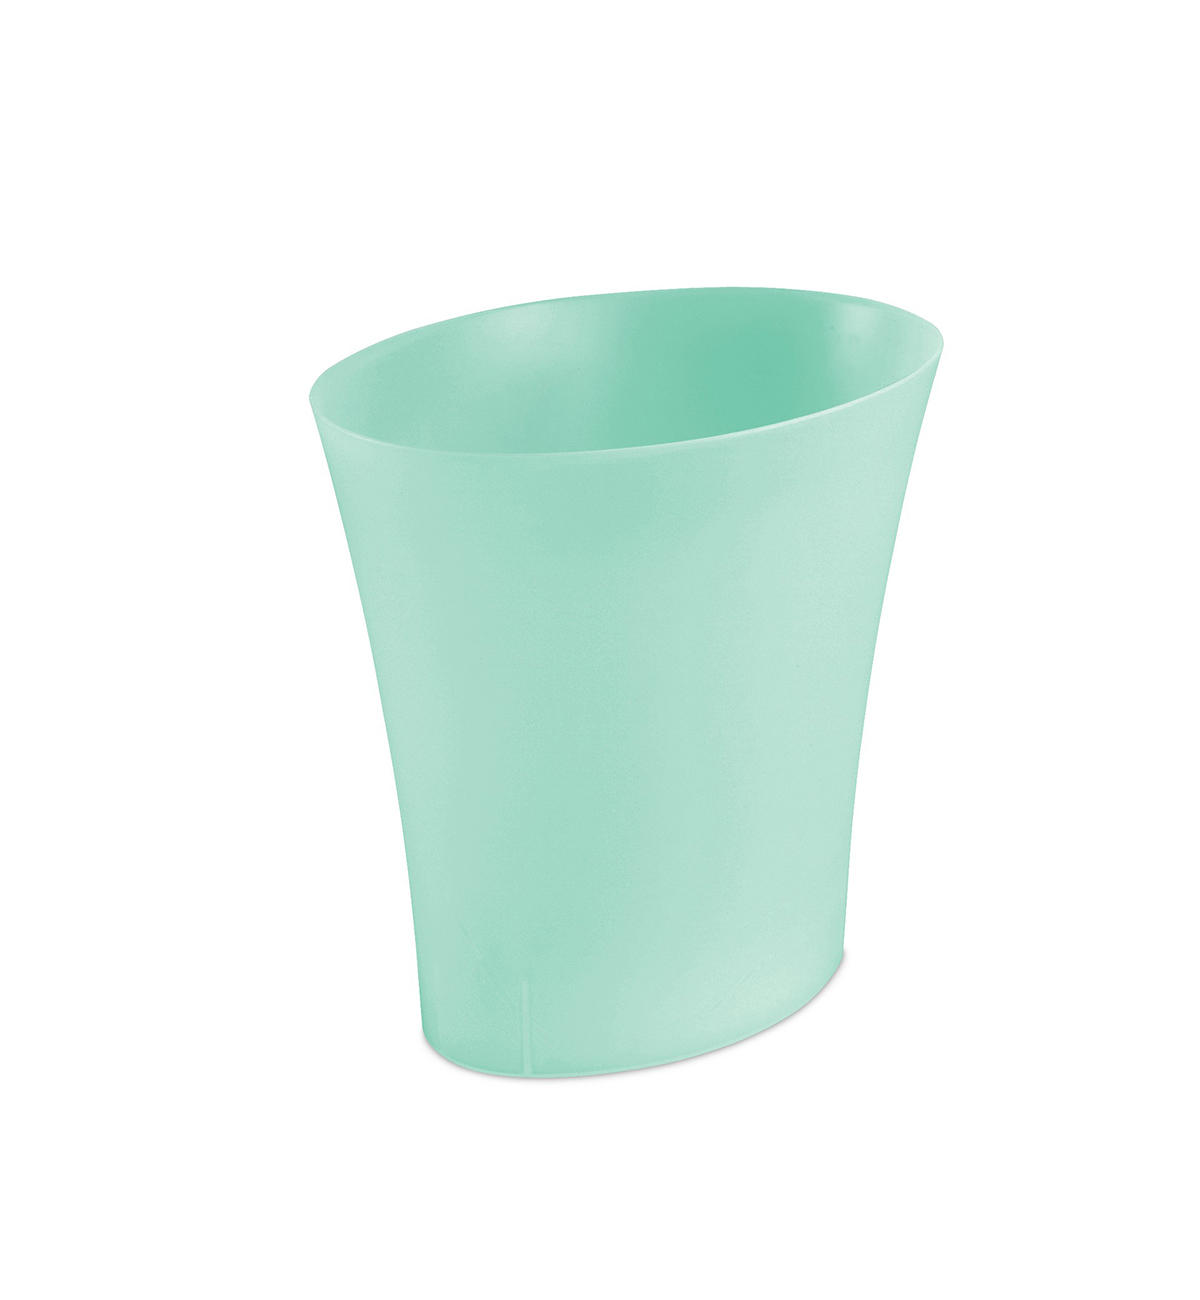 Dorm Room Decor, mint green waste basket